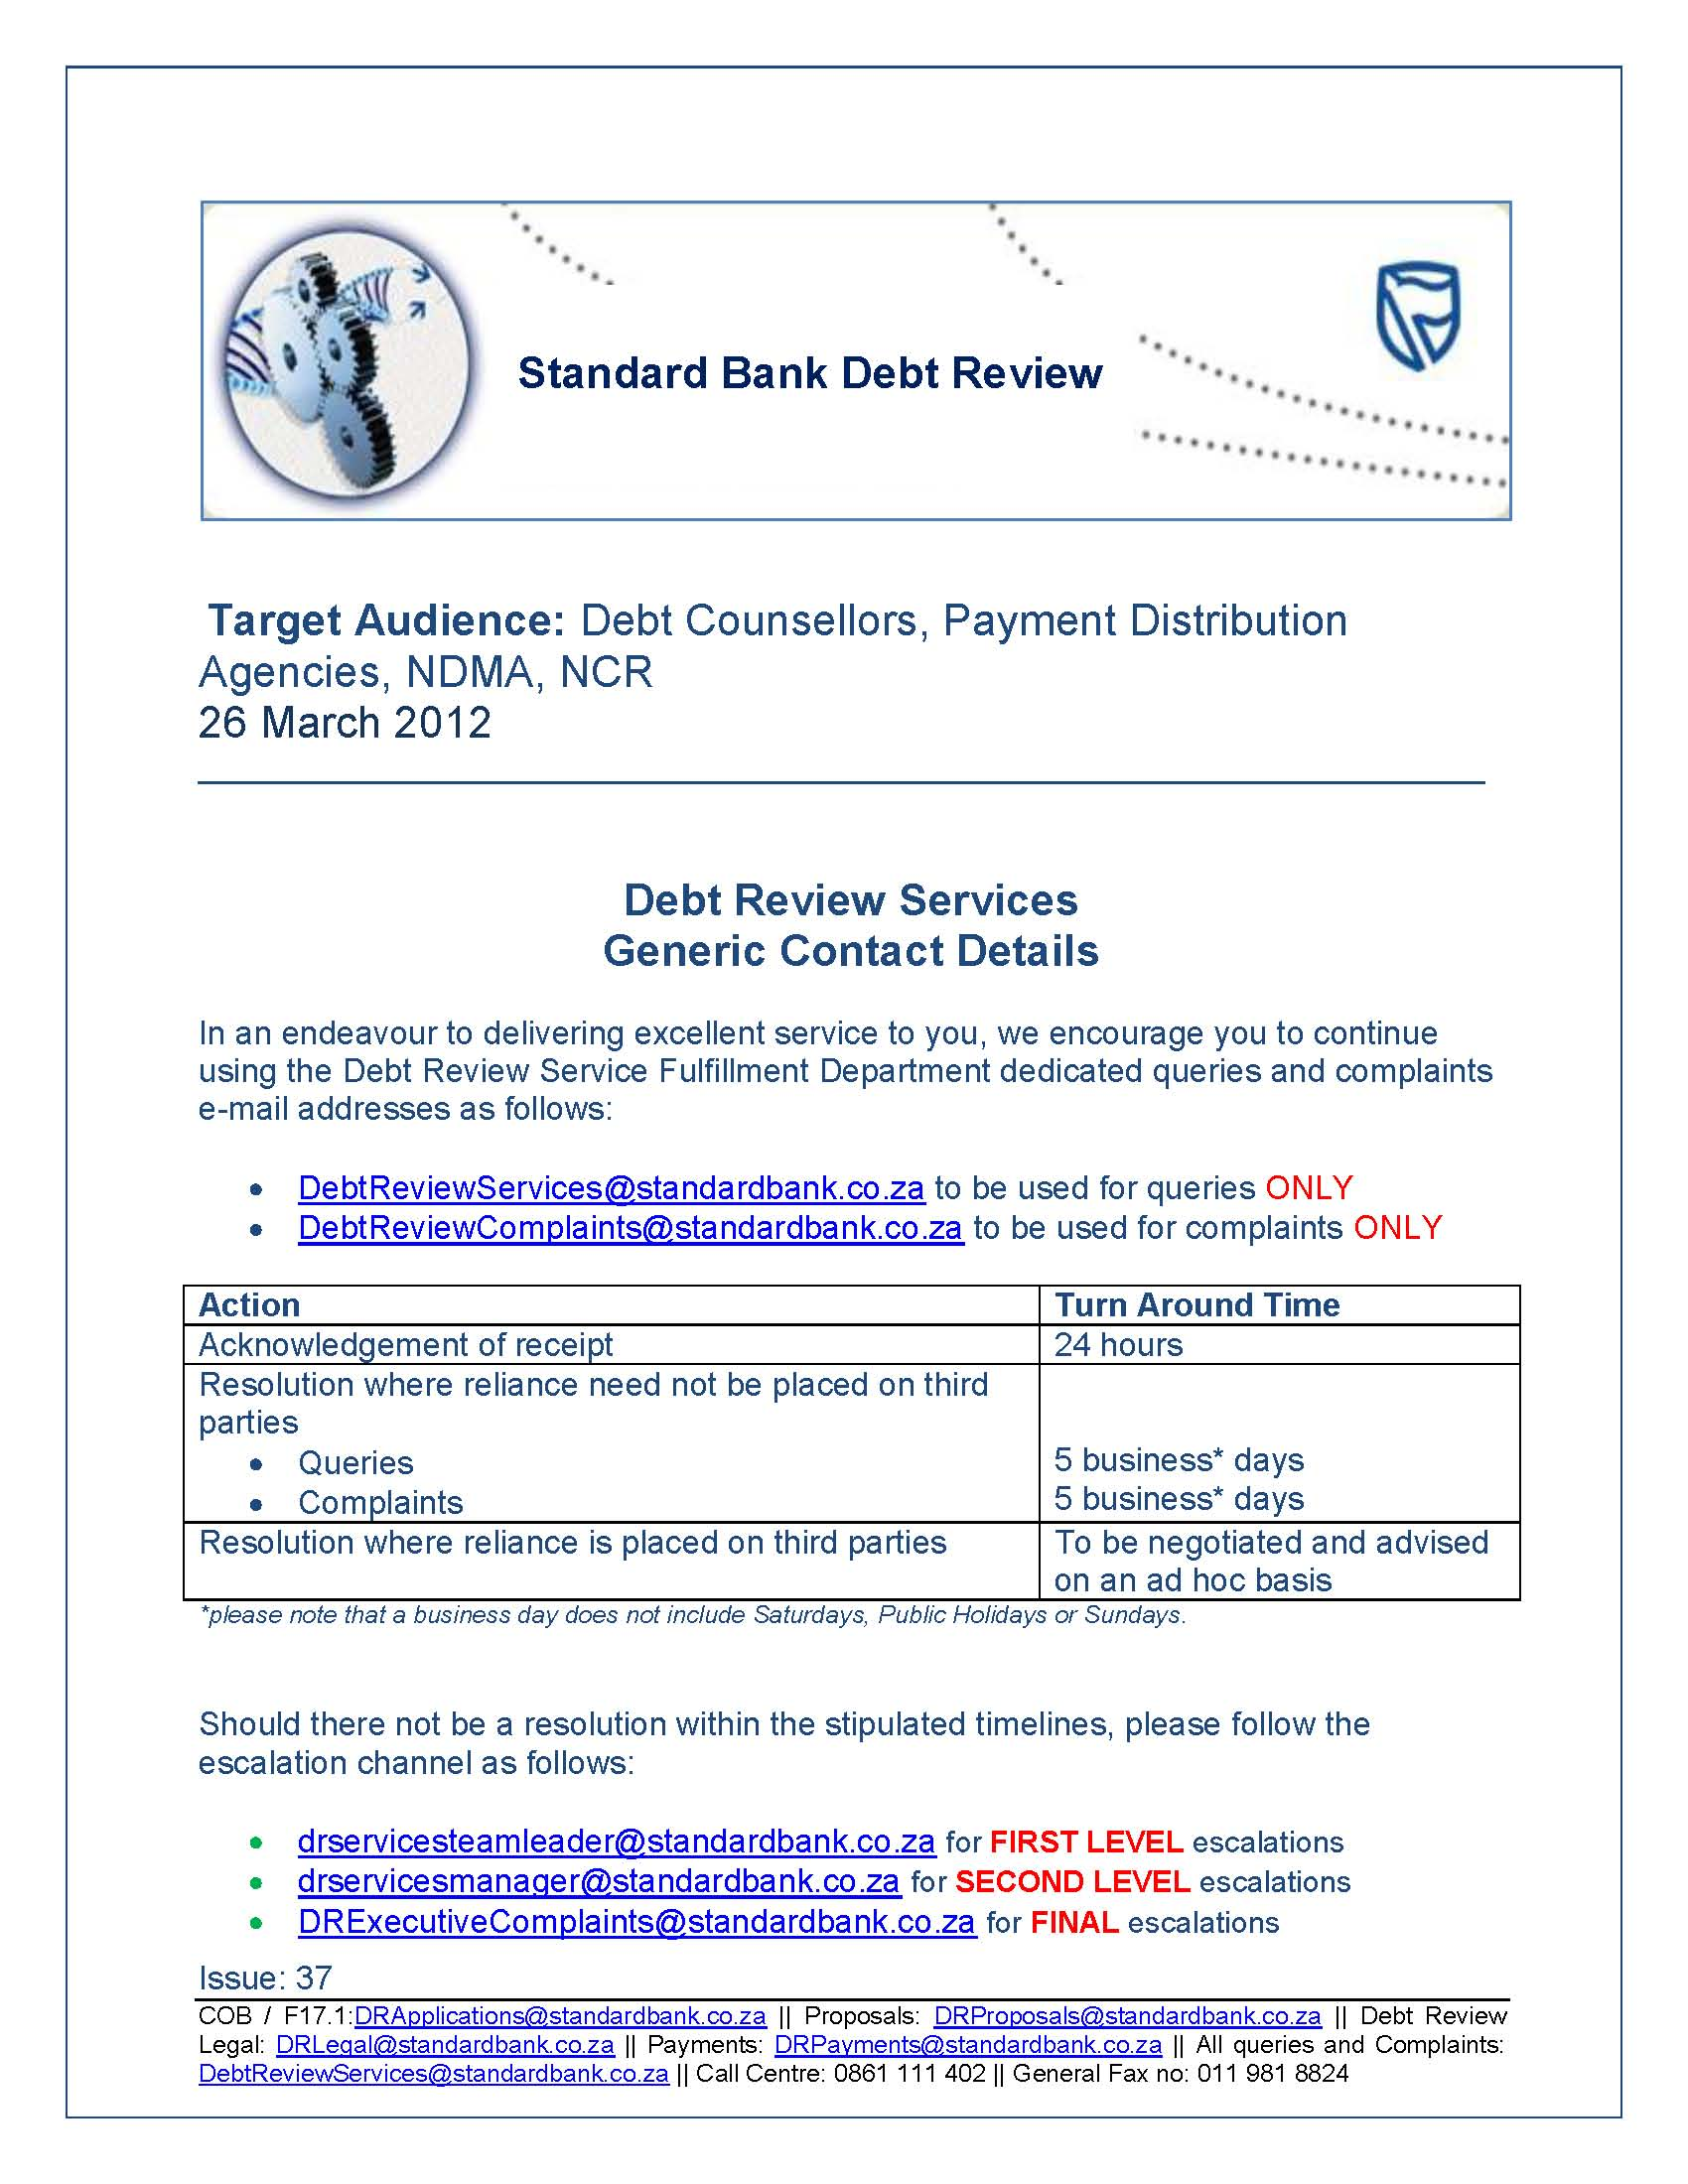 Debt Counselor Cover Letter Std Bank Contact Details For Debt Review Matters